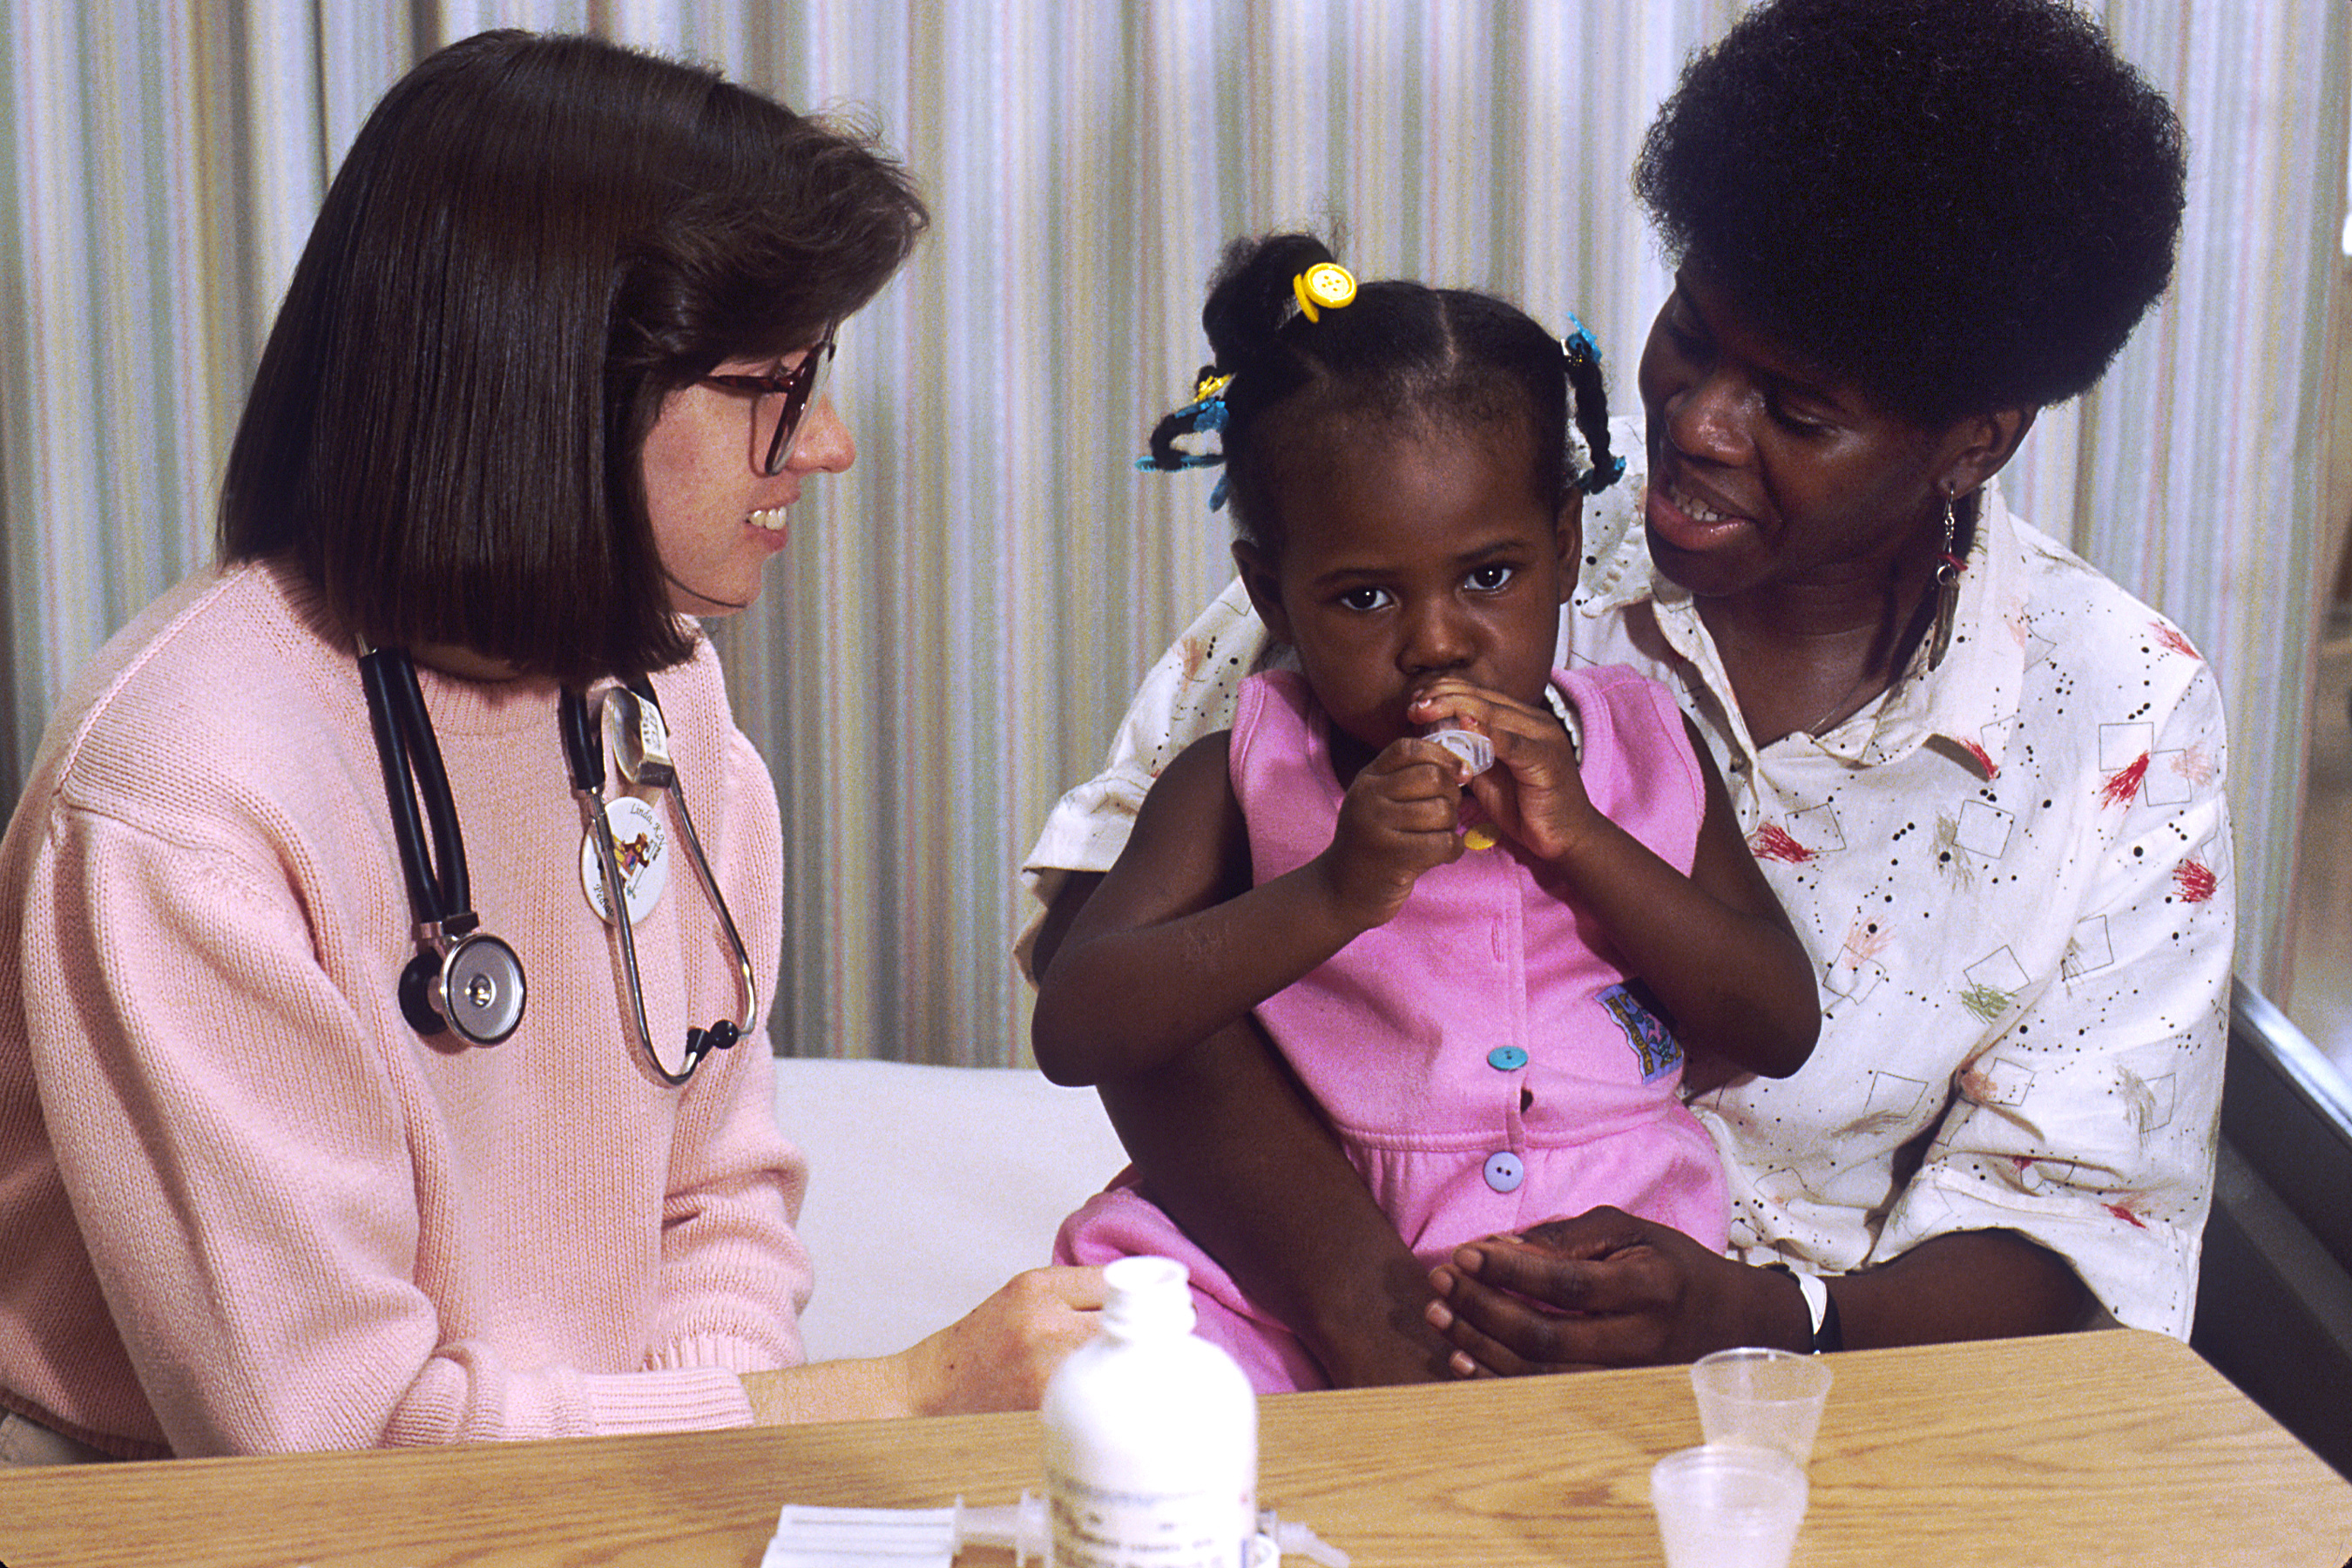 One medical woman with stethoscope next to a black mother with child on lap taking medicine